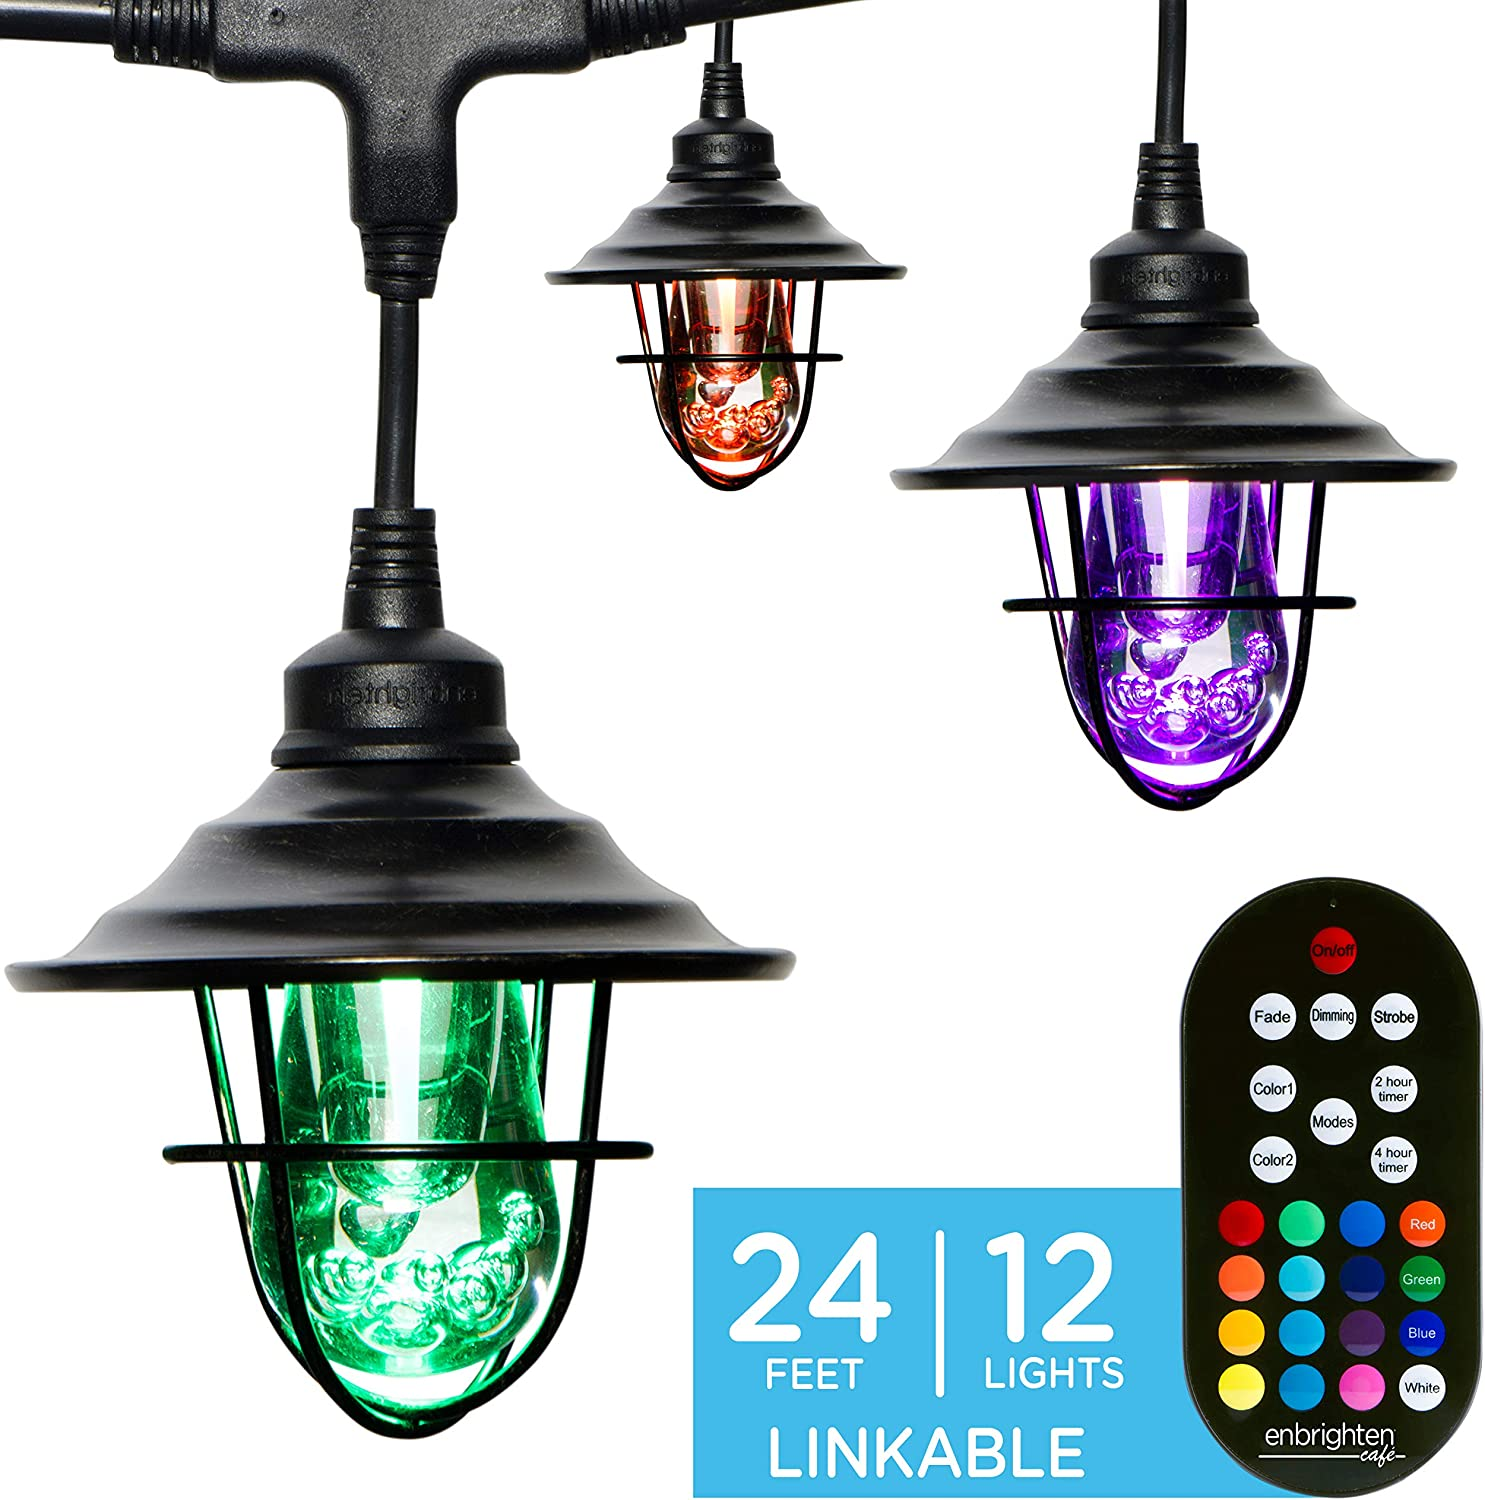 Enbrighten Seasons LED Warm White & Color Changing Café String Lights with Oil-Rubbed Bronze Lens Shade, Black, 24ft, 12 Impact Resistant Lifetime Bulbs, Wireless, Weatherproof, Indoor/Outdoor, 43383